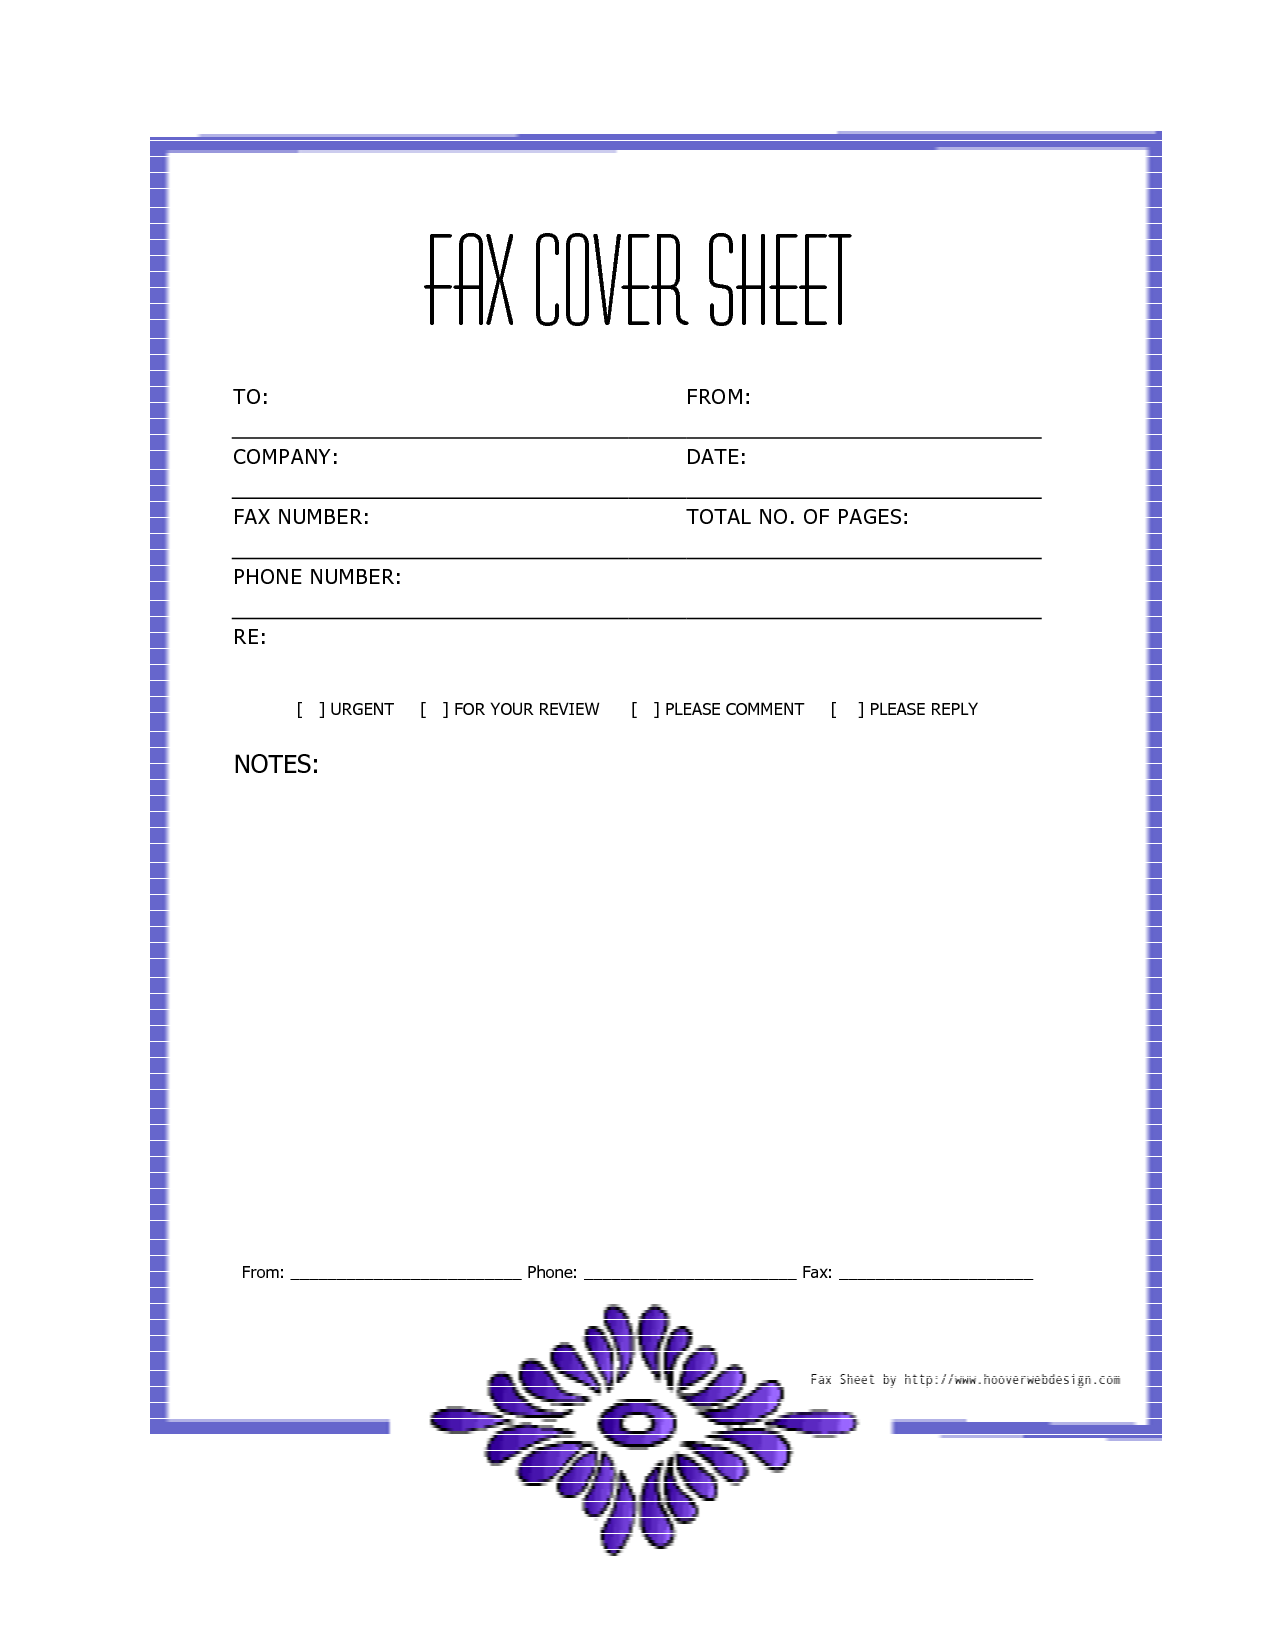 Free Downloads Fax Covers Sheets | Free Printable Fax Cover Sheet Template  Elegant   Download As  Free Fax Template Cover Sheet Word